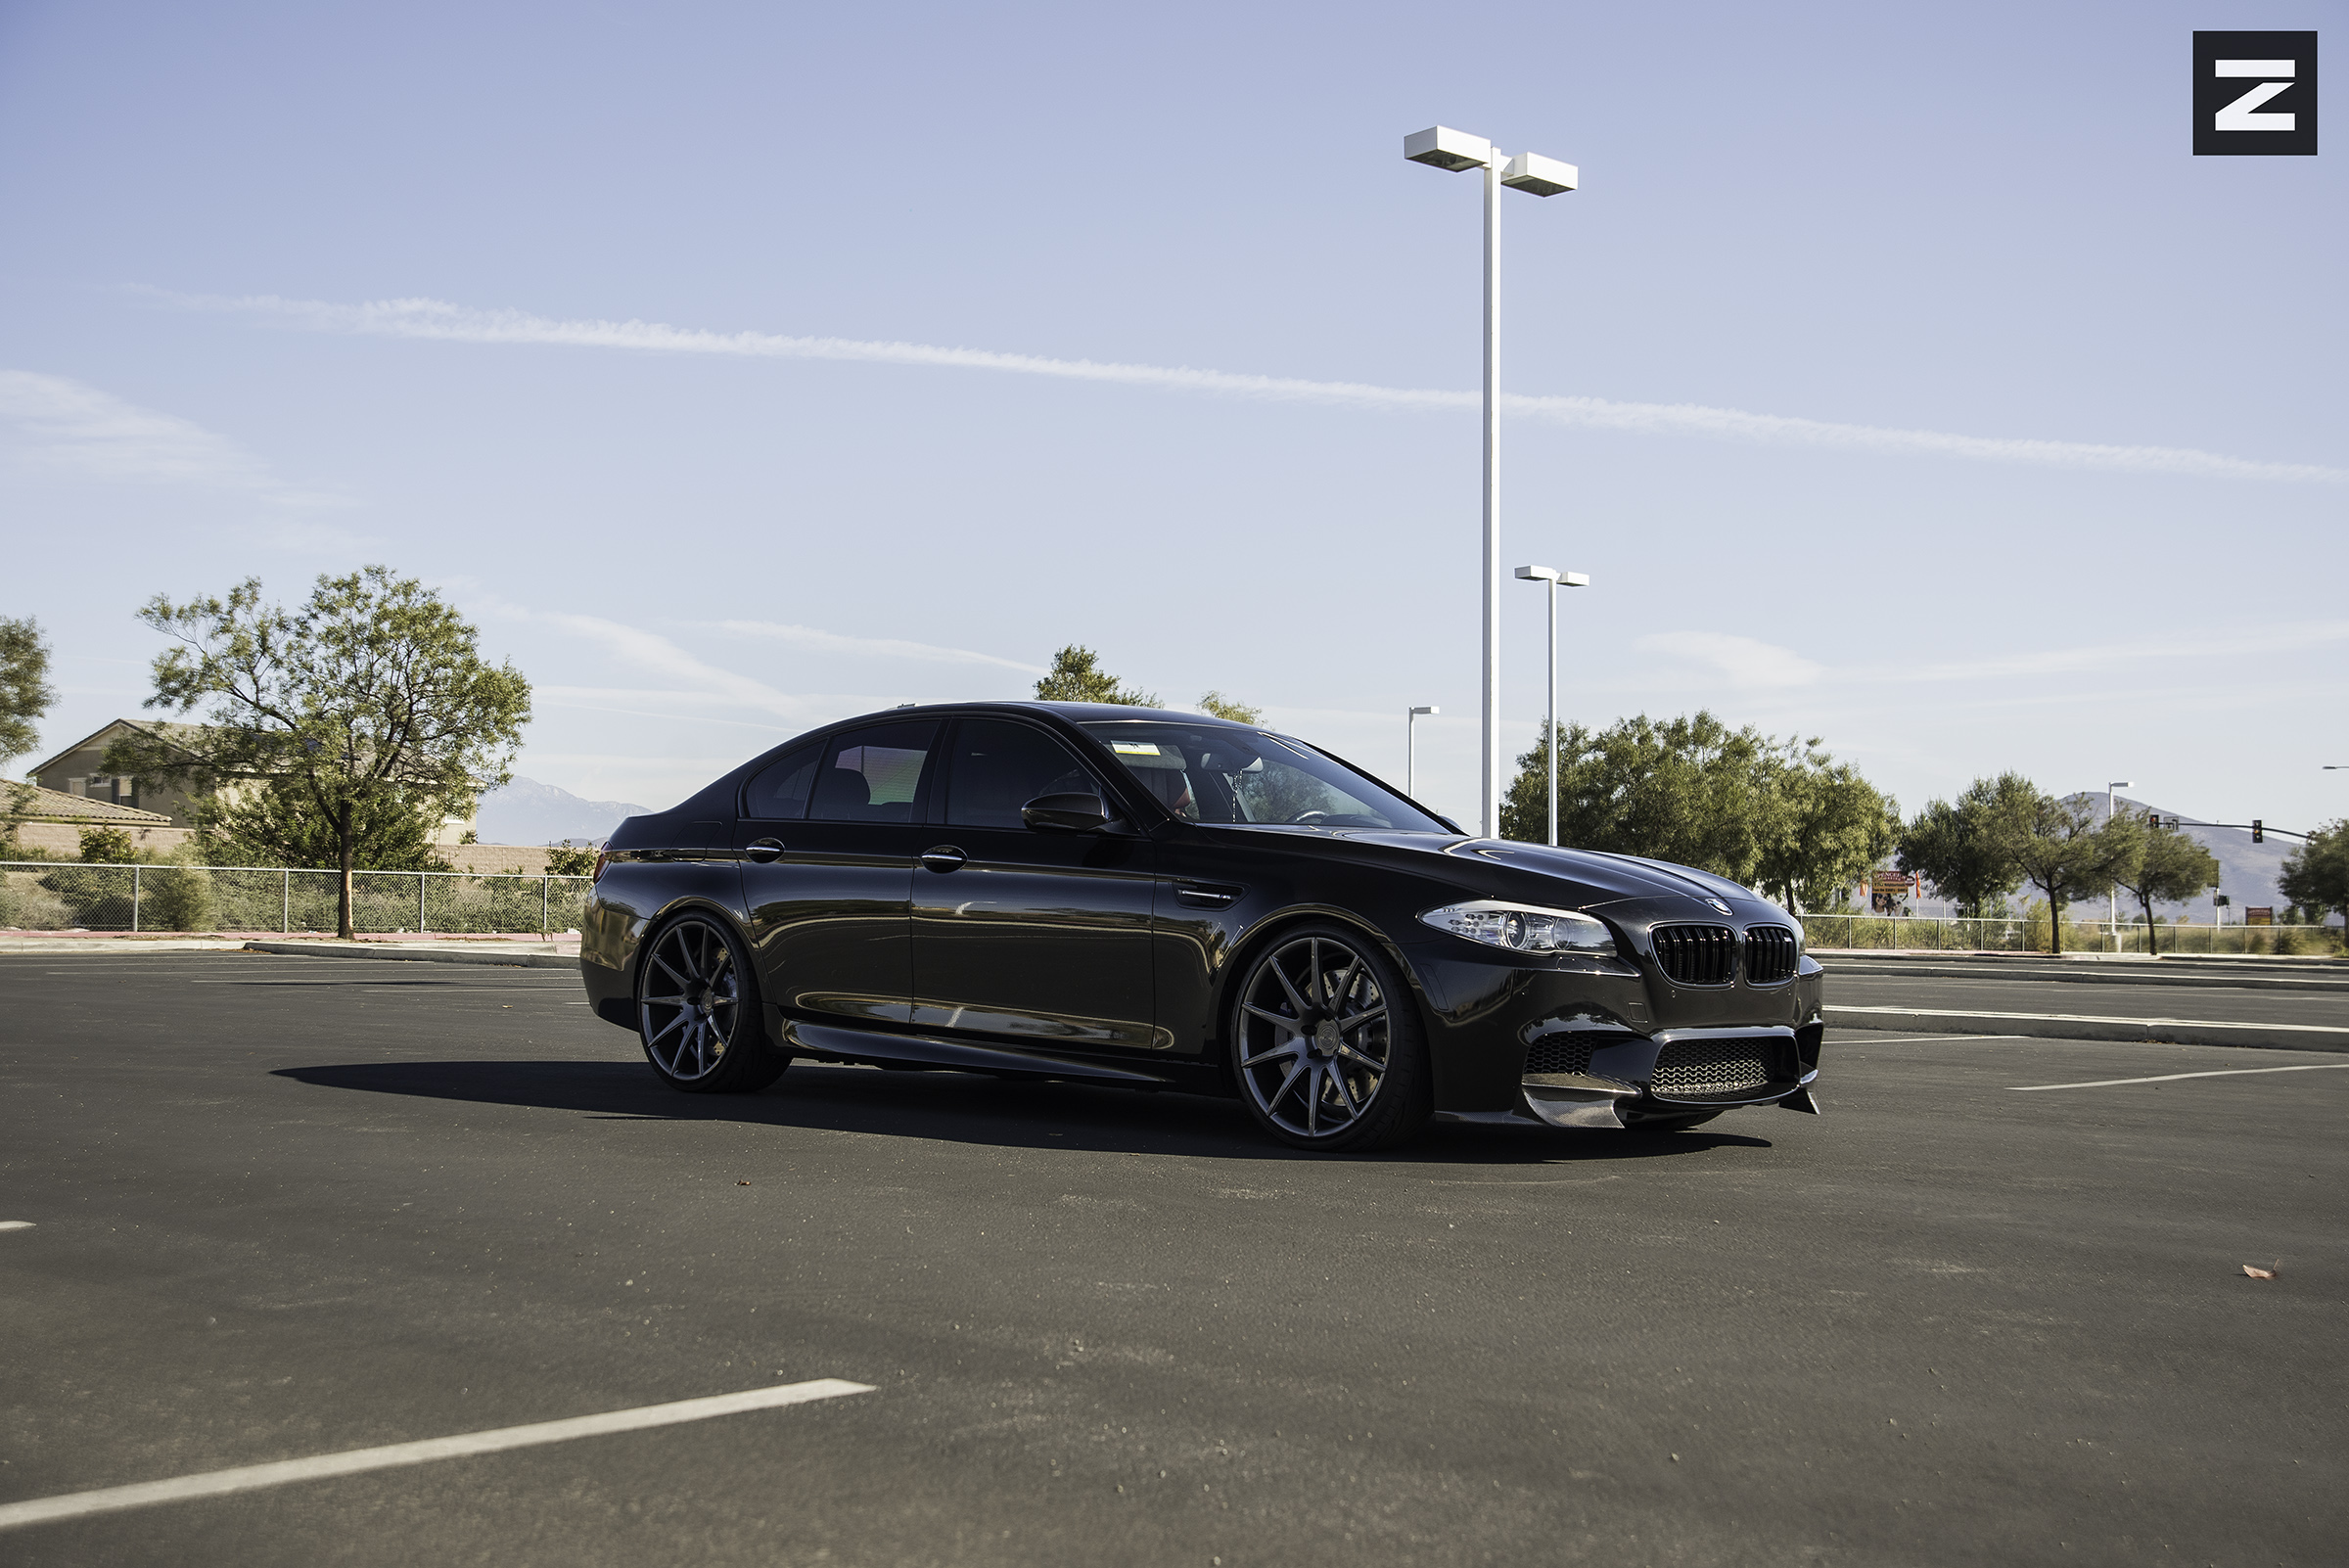 BMW F10 M5 Black Gunmetal ZS03